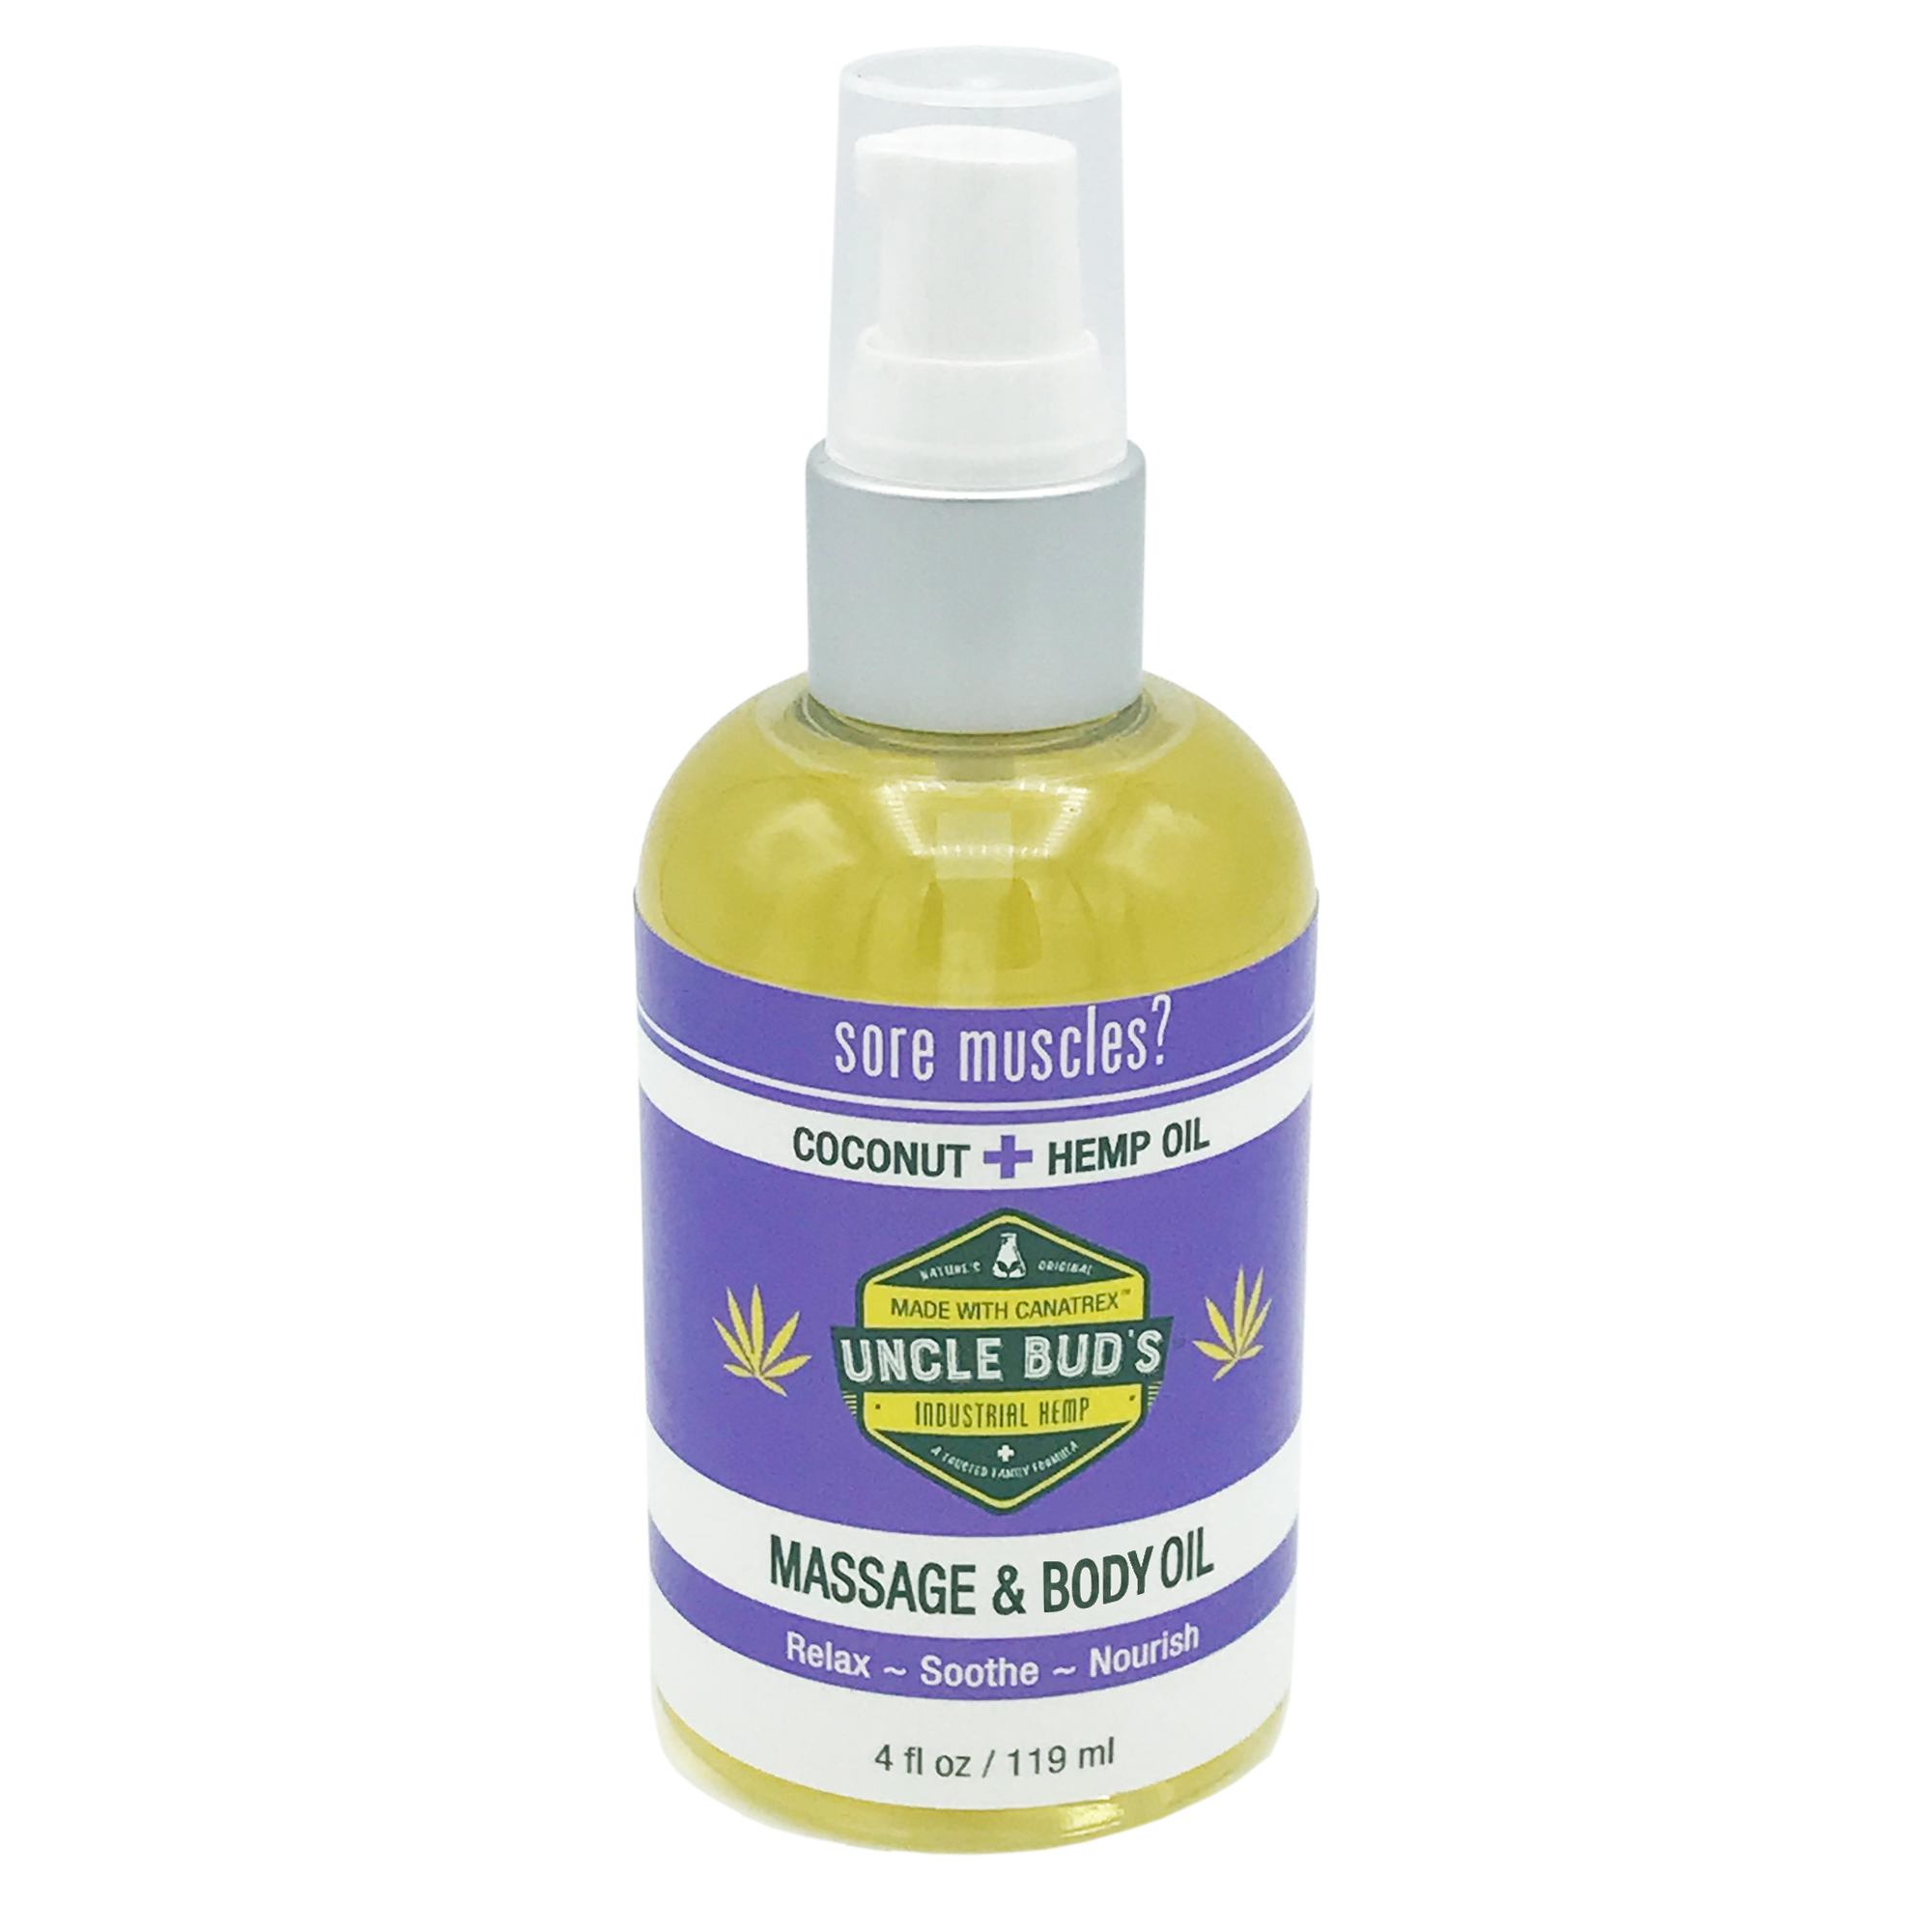 Uncle Bud's Hemp Massage & Body Oil. Relieve aches and pains with this versatile, fast-absorbing, coconut-scented oil. $19.99